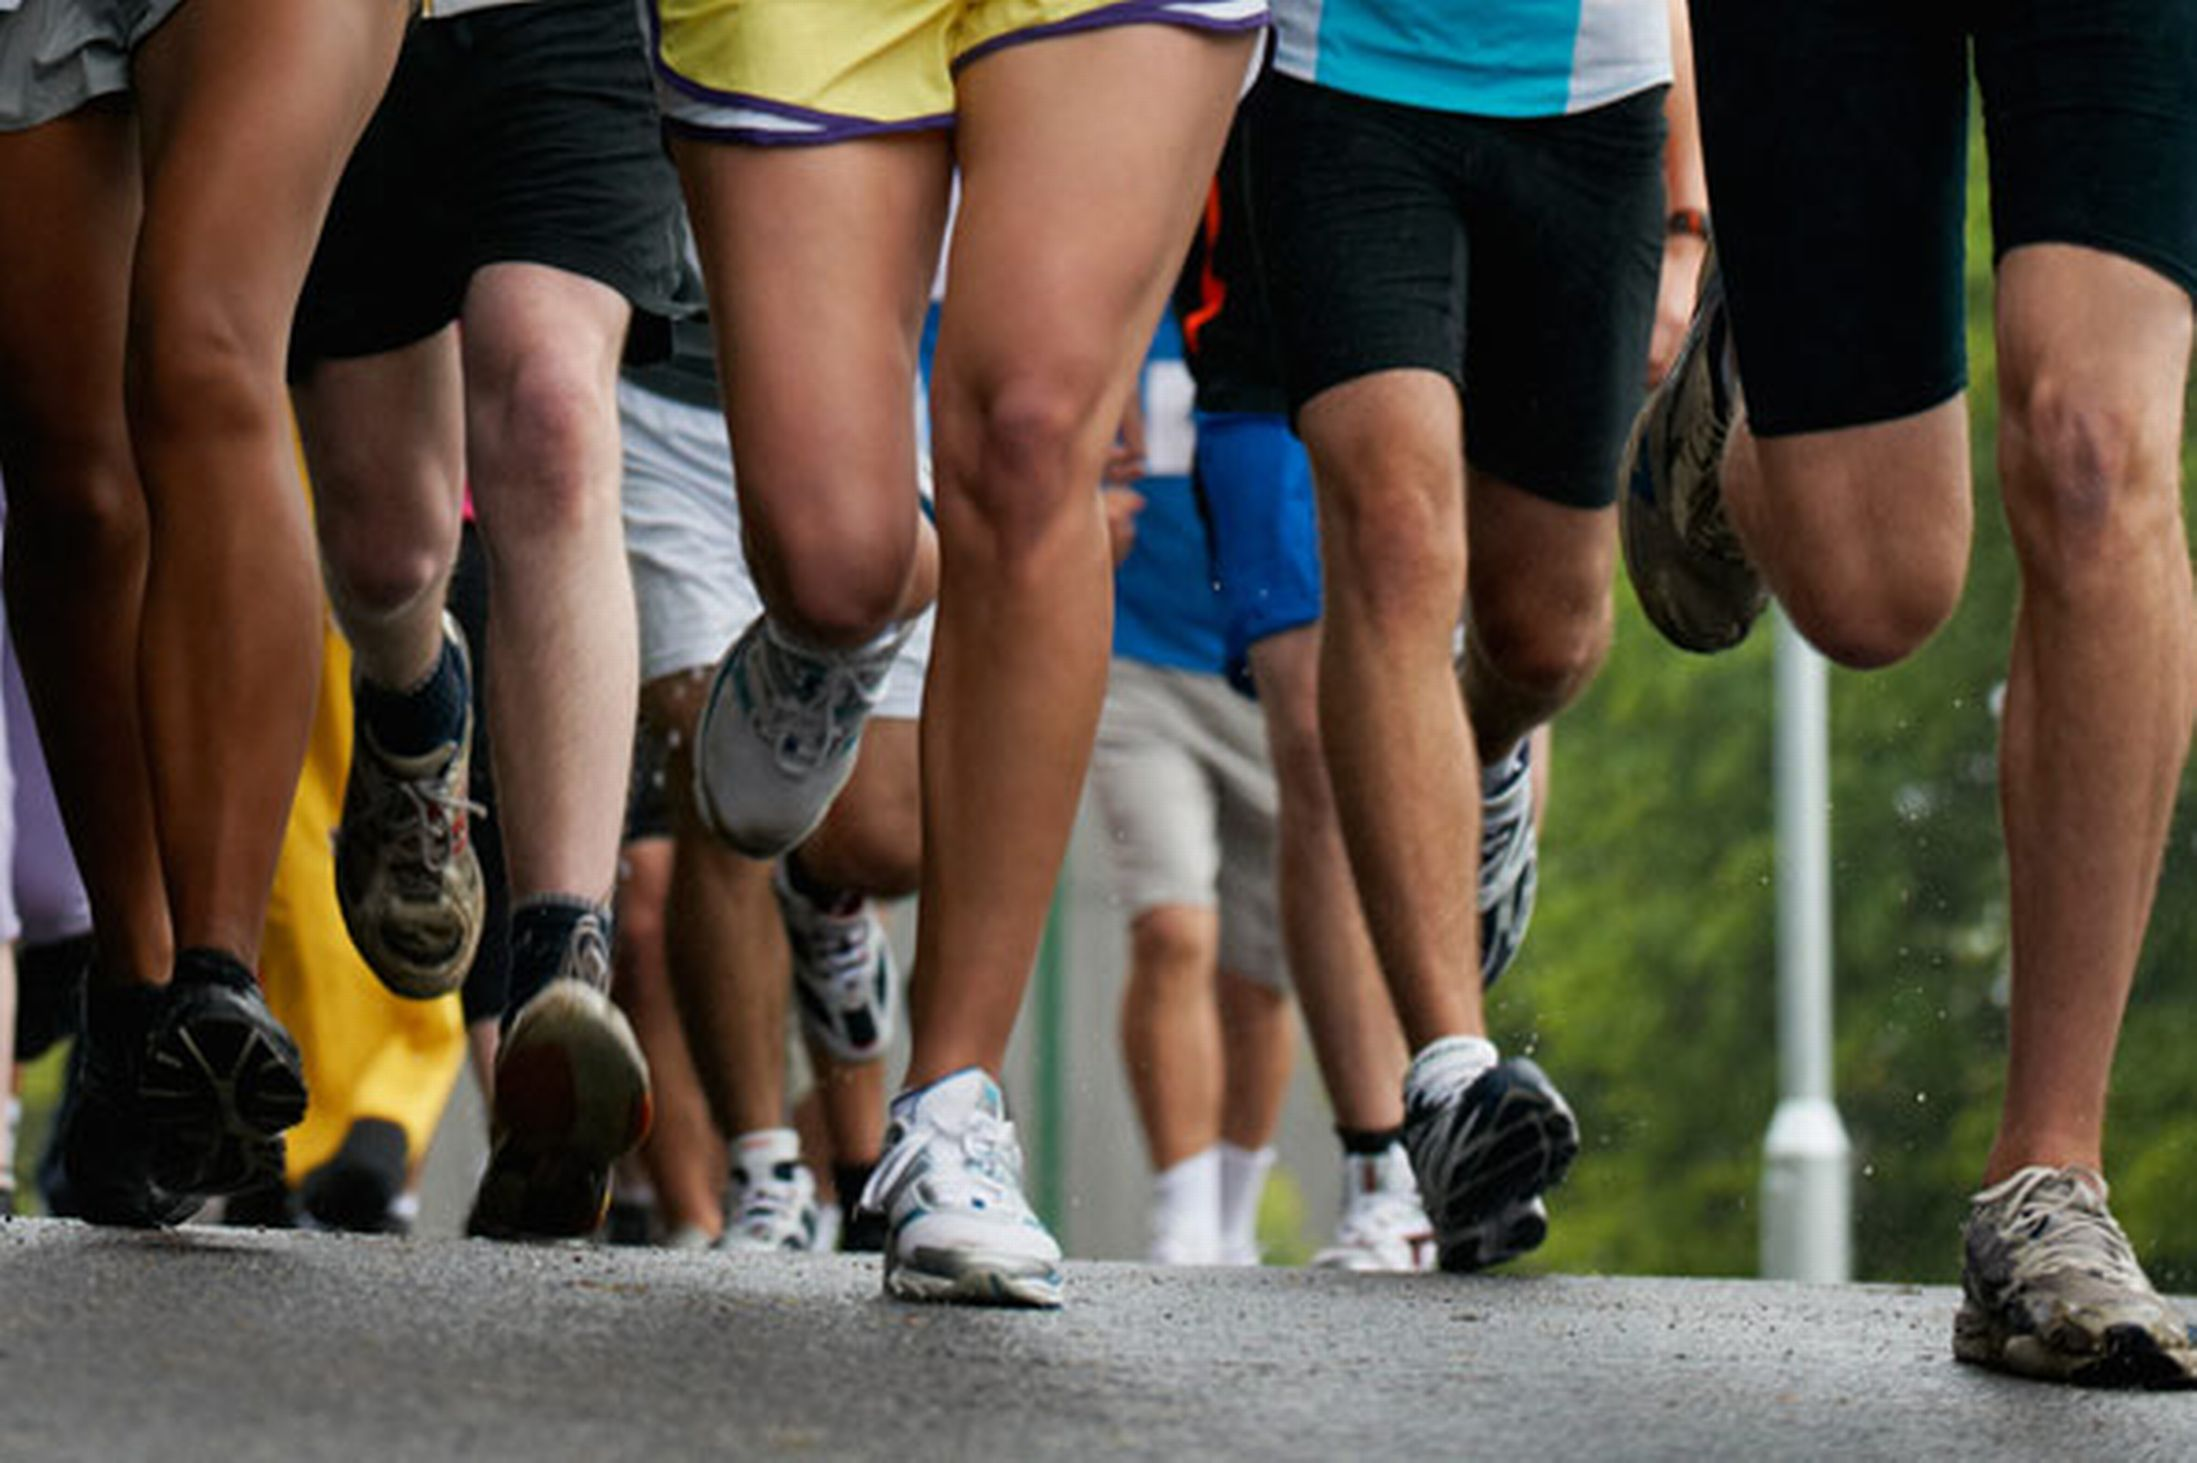 A Few Questions Before We Decide to Let You Join Our Running Club